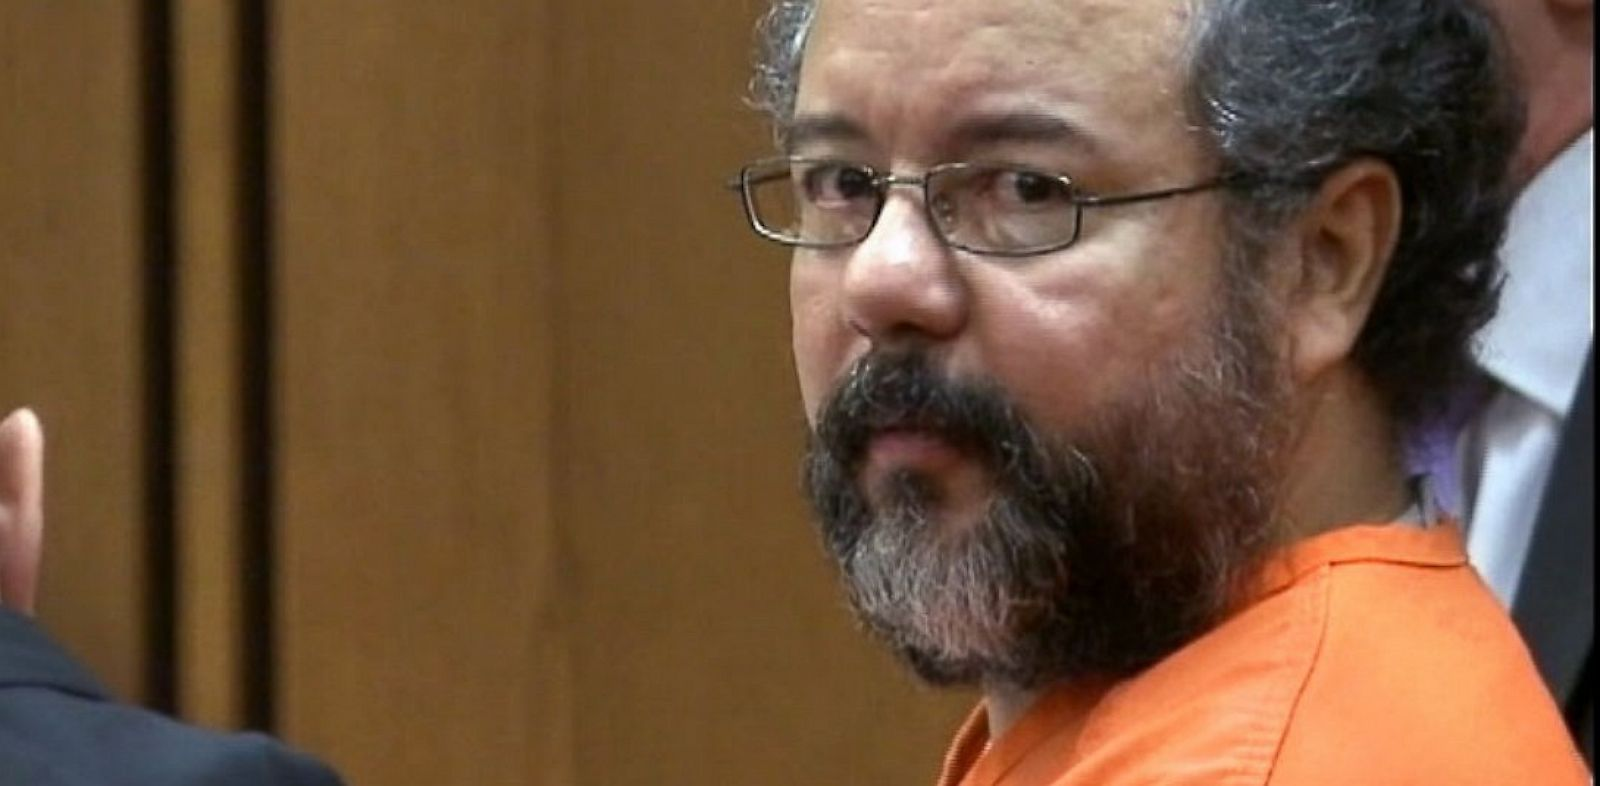 PHOTO: Ariel Castro, the accused Cleveland abductor, is shown in court, July 26, 2013, in Cleveland, Ohio.